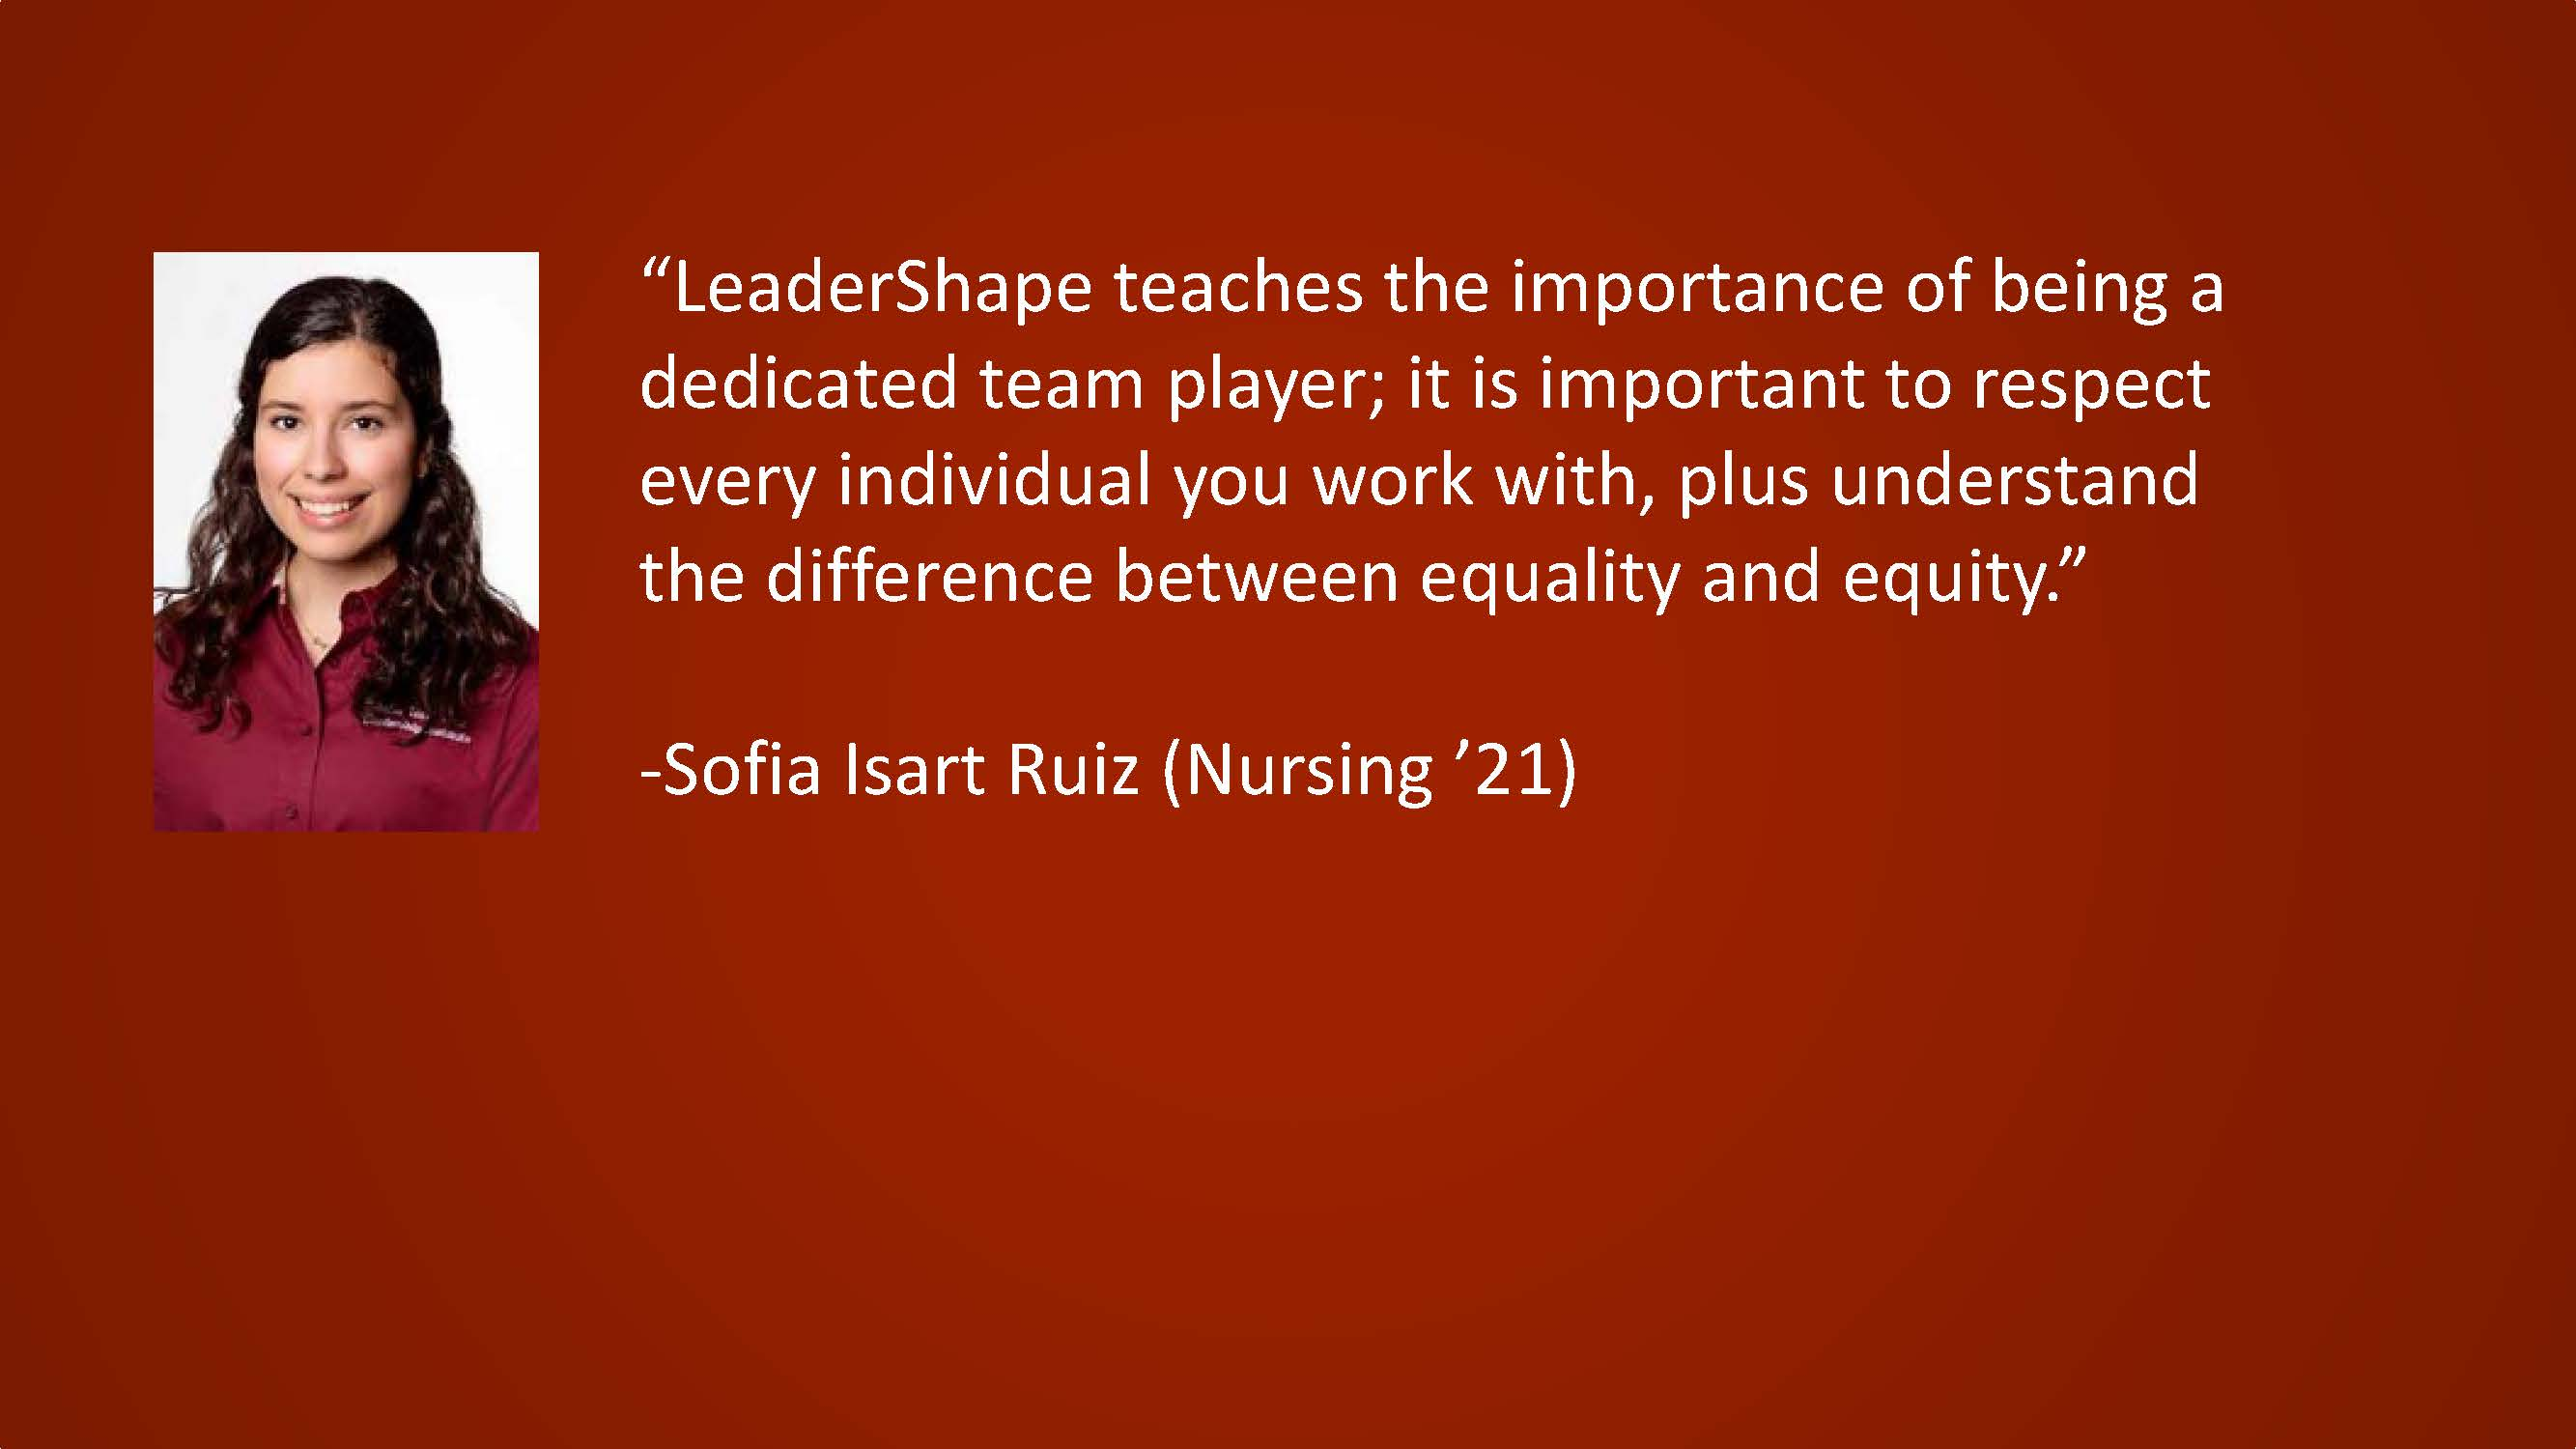 LeaderShape teaches the importance of being a dedicated team player; it is important to respect every individual you work with, plus understand the difference between equality and equity. — Sofia Isart Ruiz (Nursing '21)